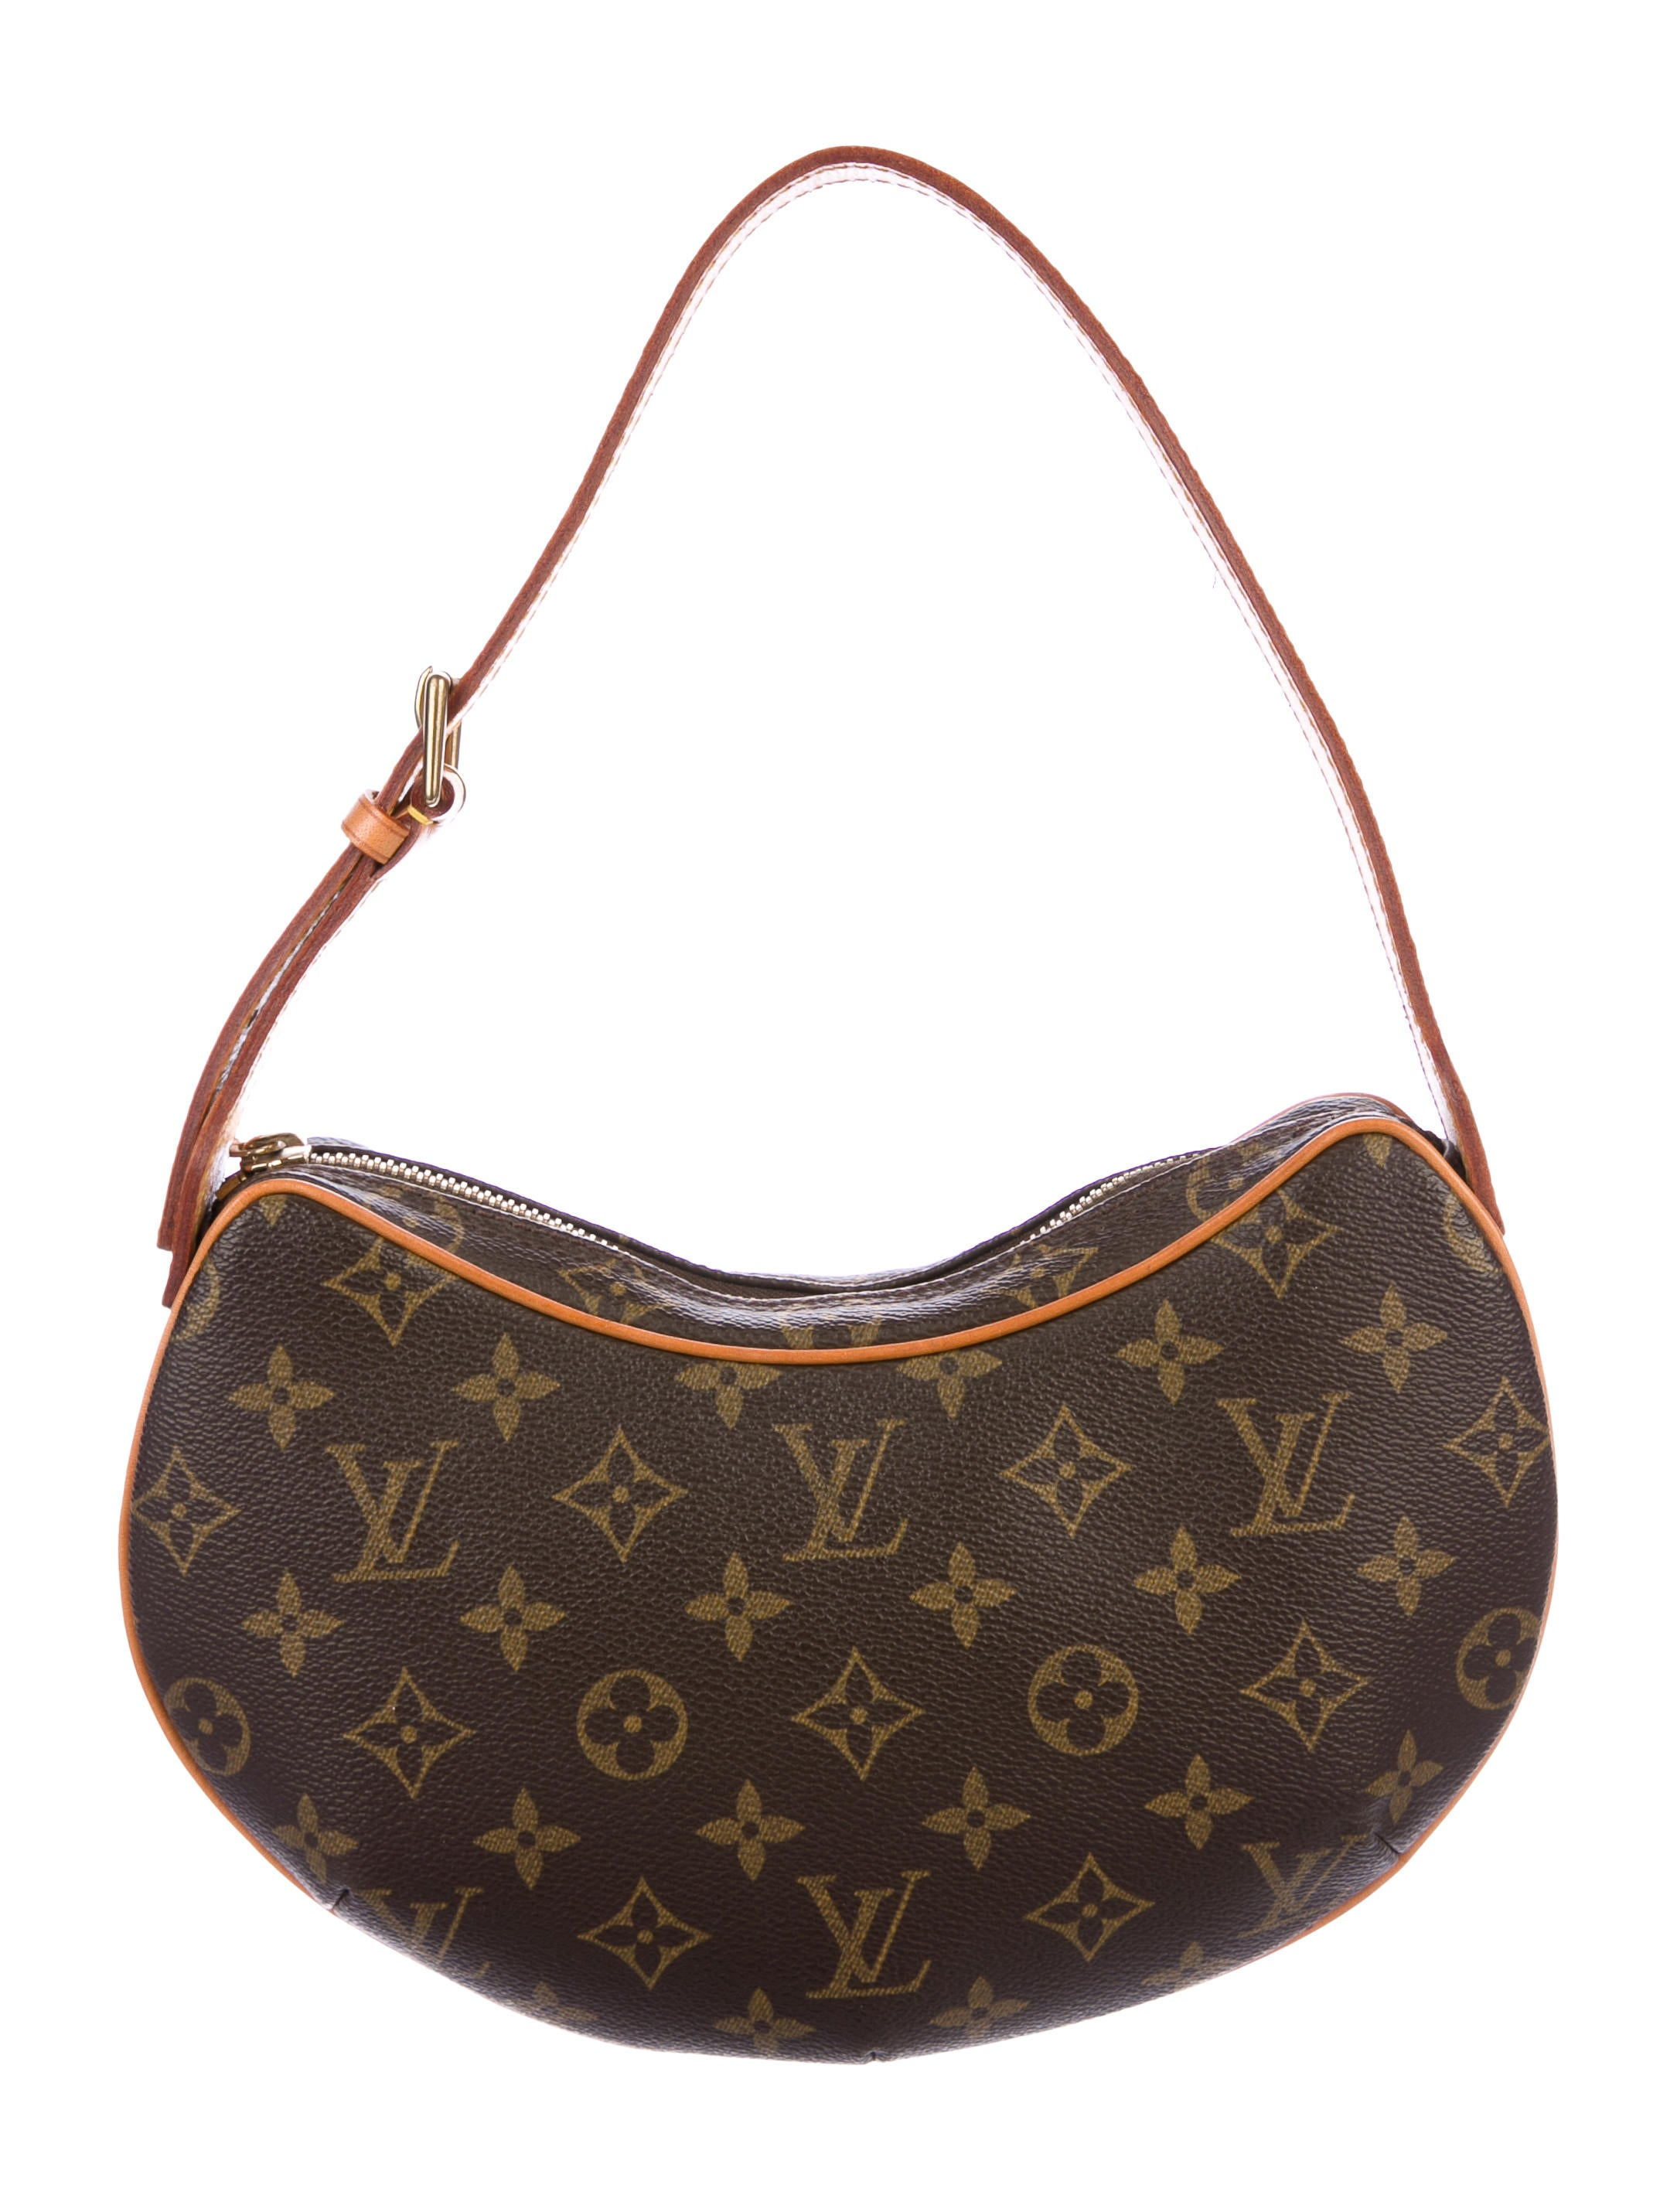 325b2ed6b8ec Louis Vuitton Monogram Croissant PM - Handbags - LOU178698